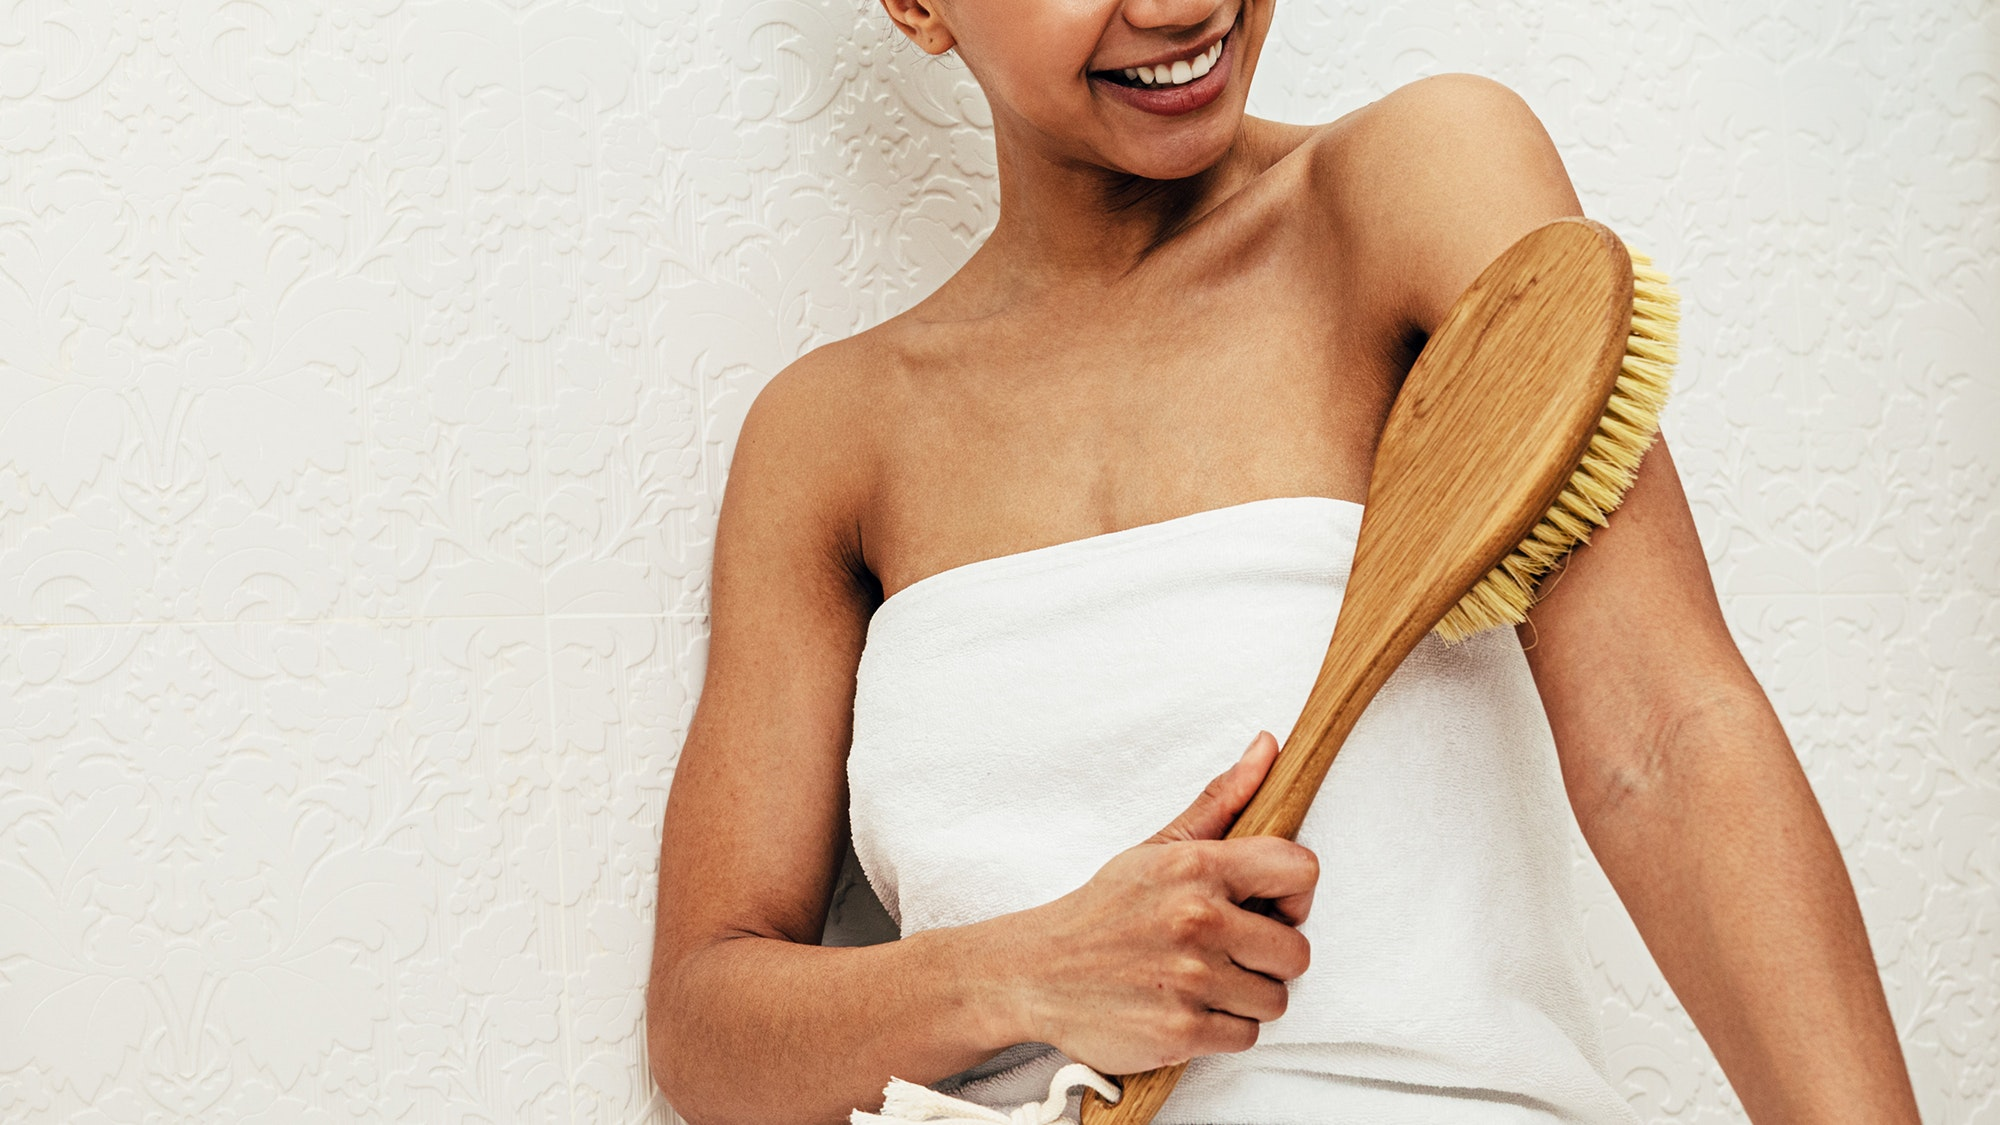 Woman dry brushing skin